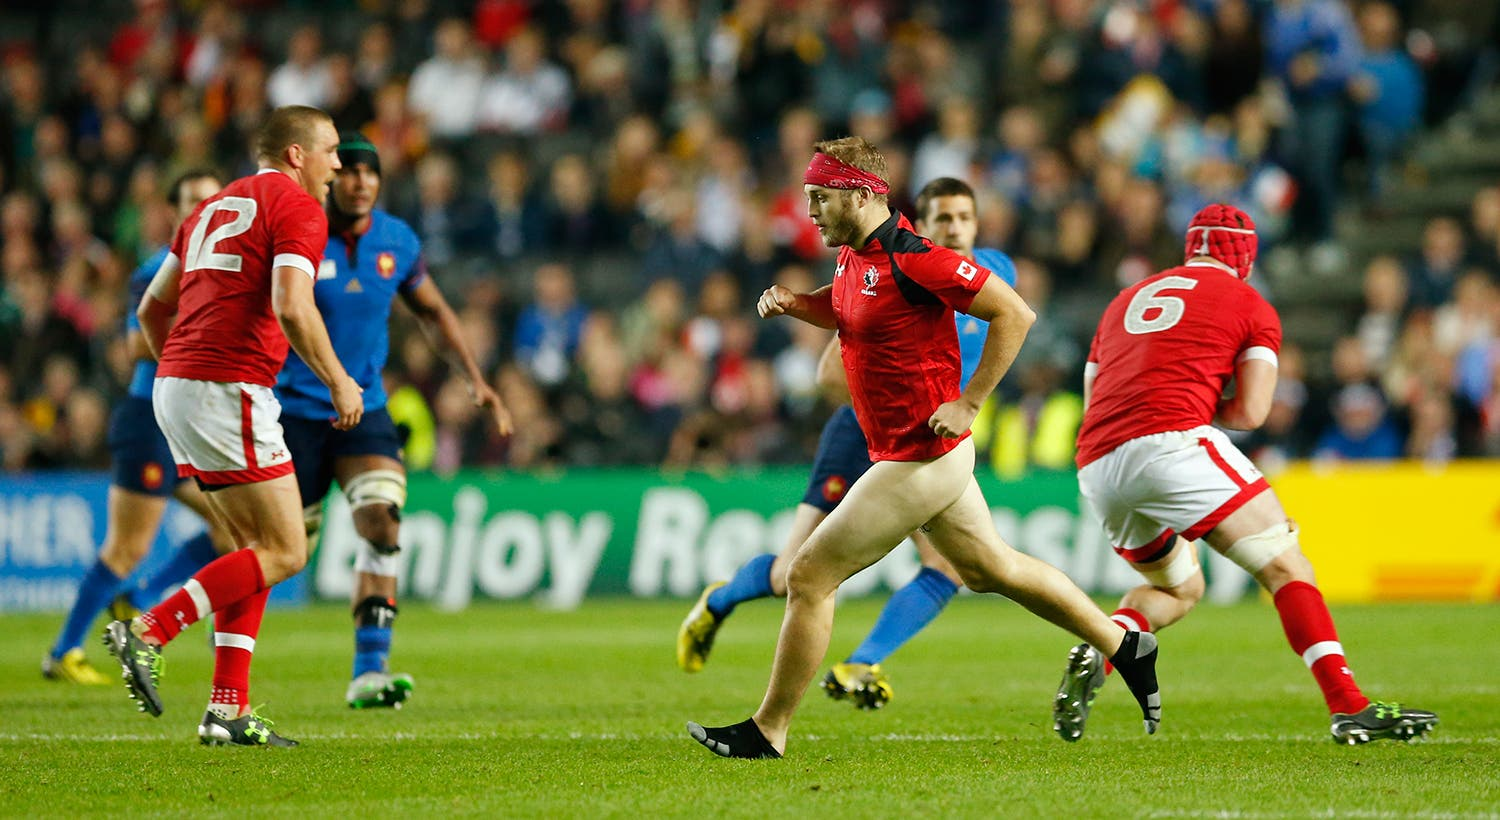 No Mundial de Rugby 2015 /Andrew Boyers - Action Images via Reuters